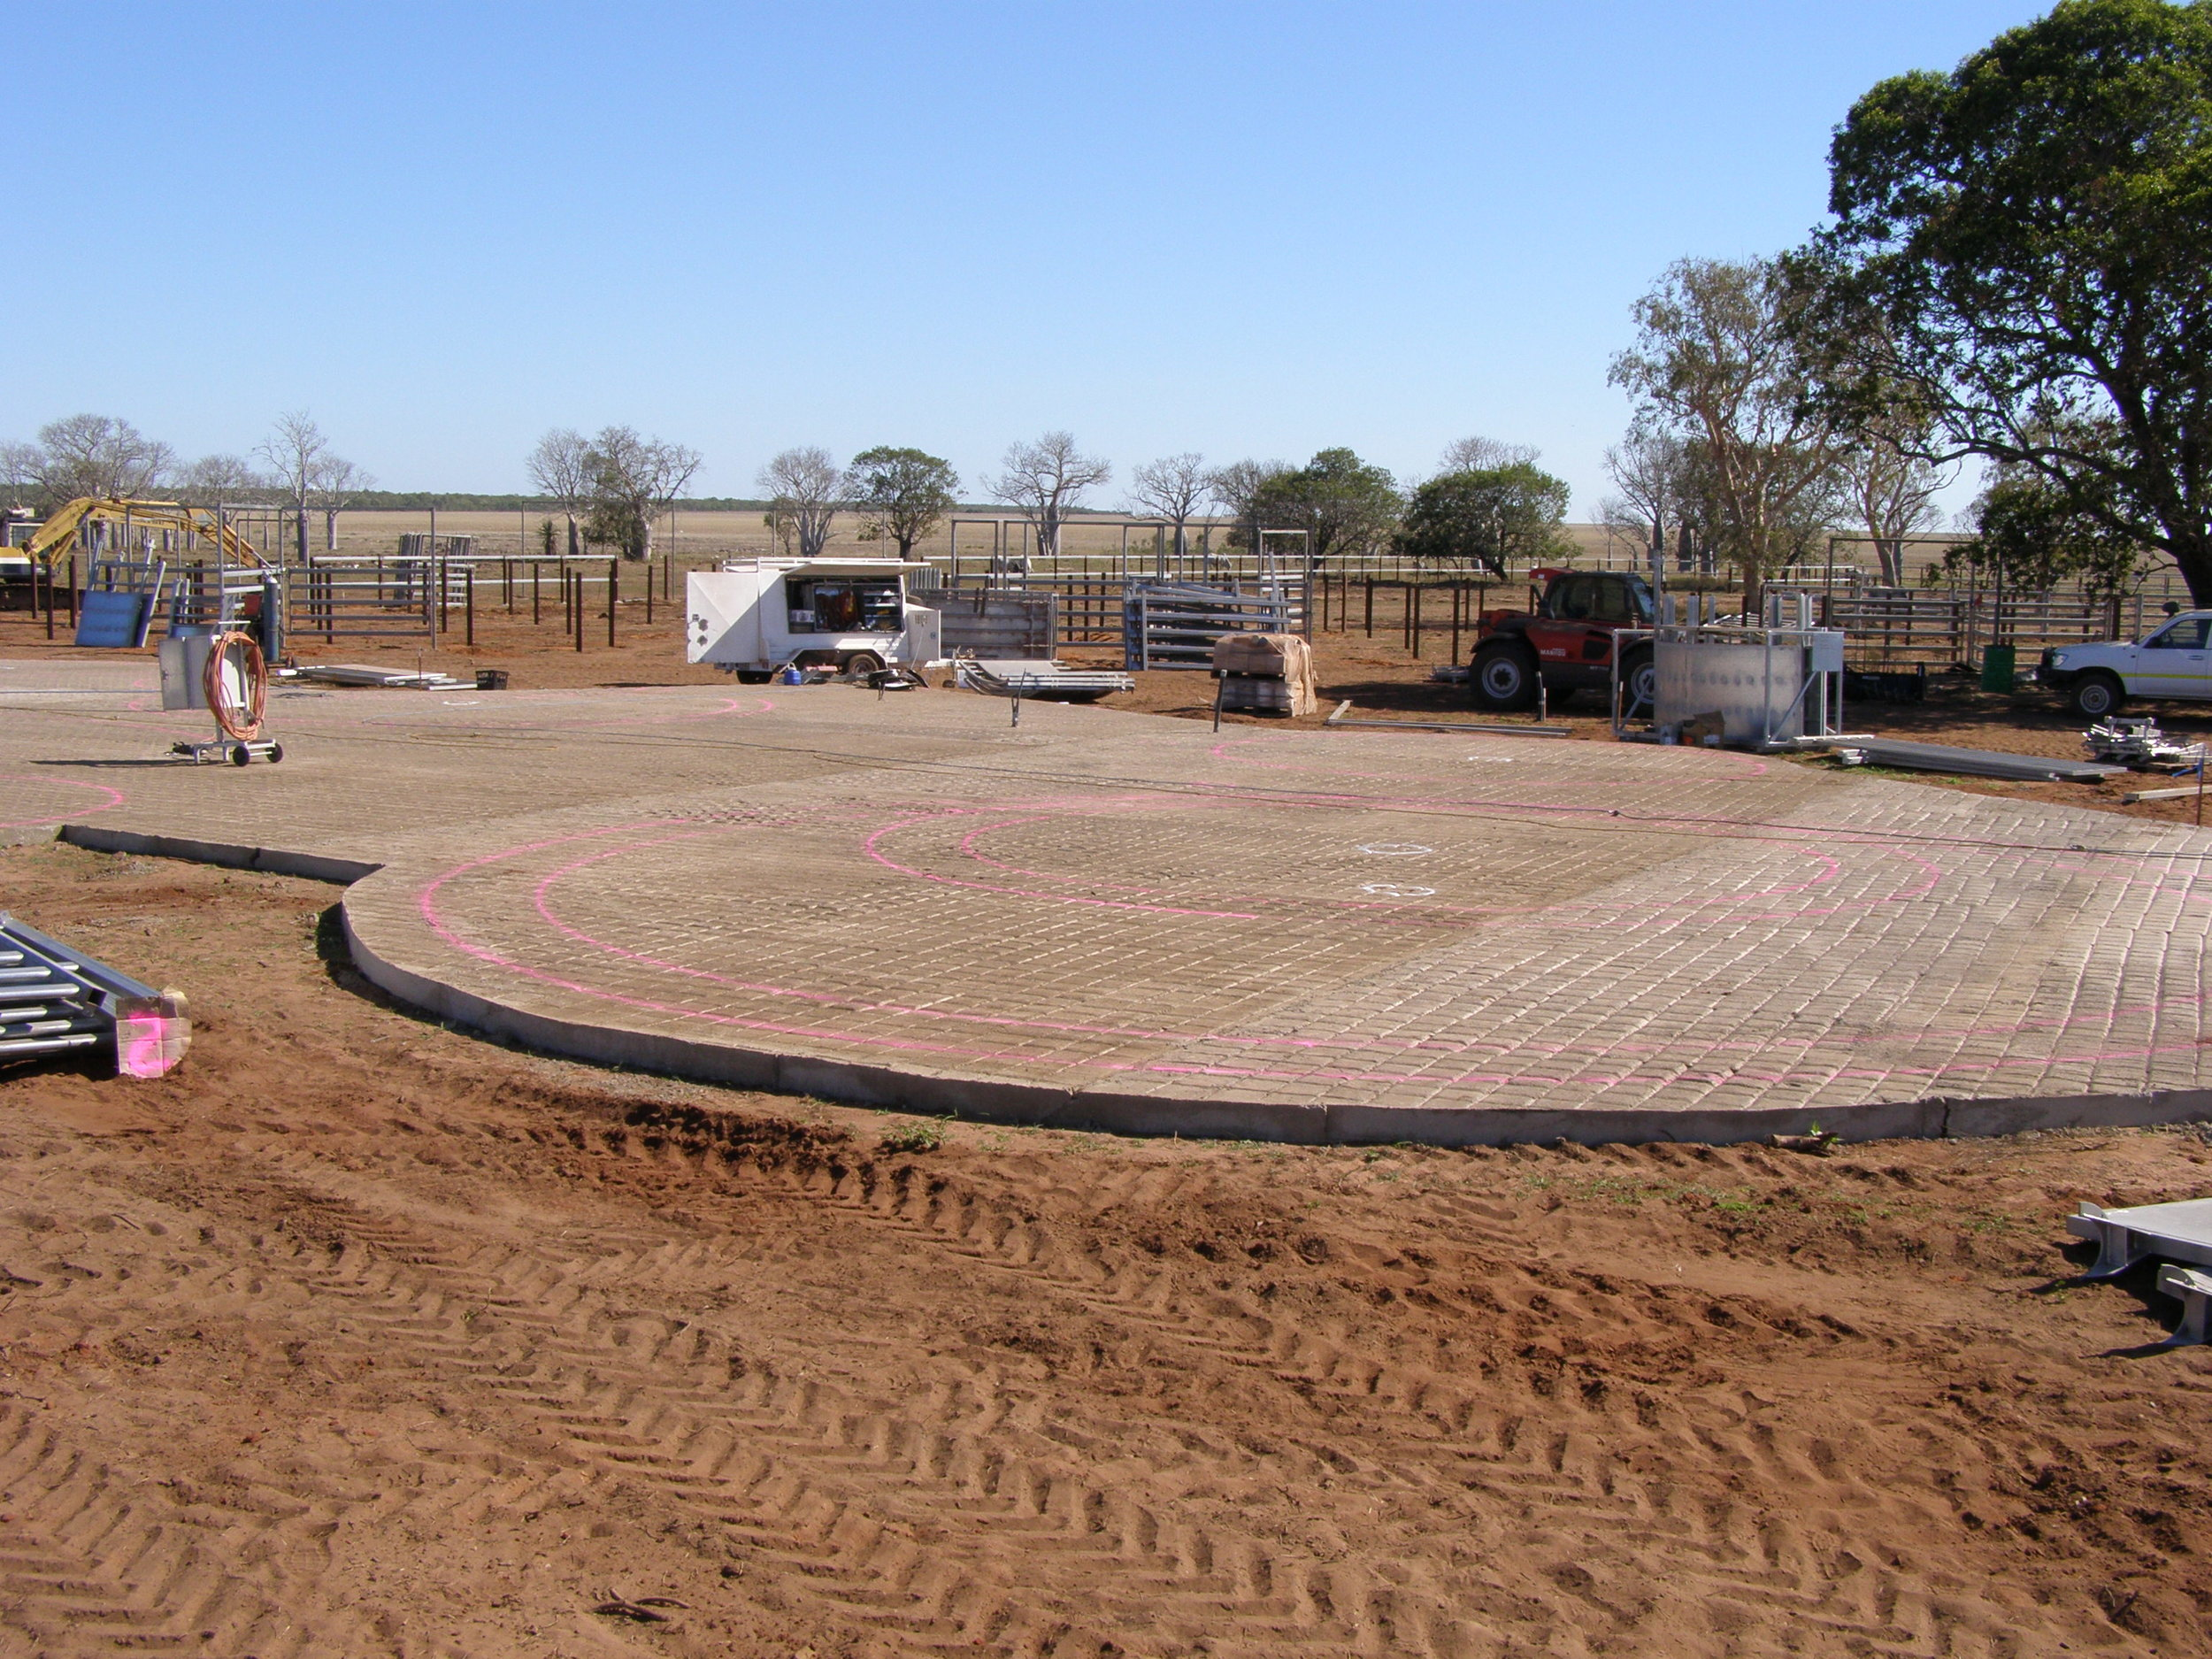 Concrete slab, ready for yards to be installed on it.